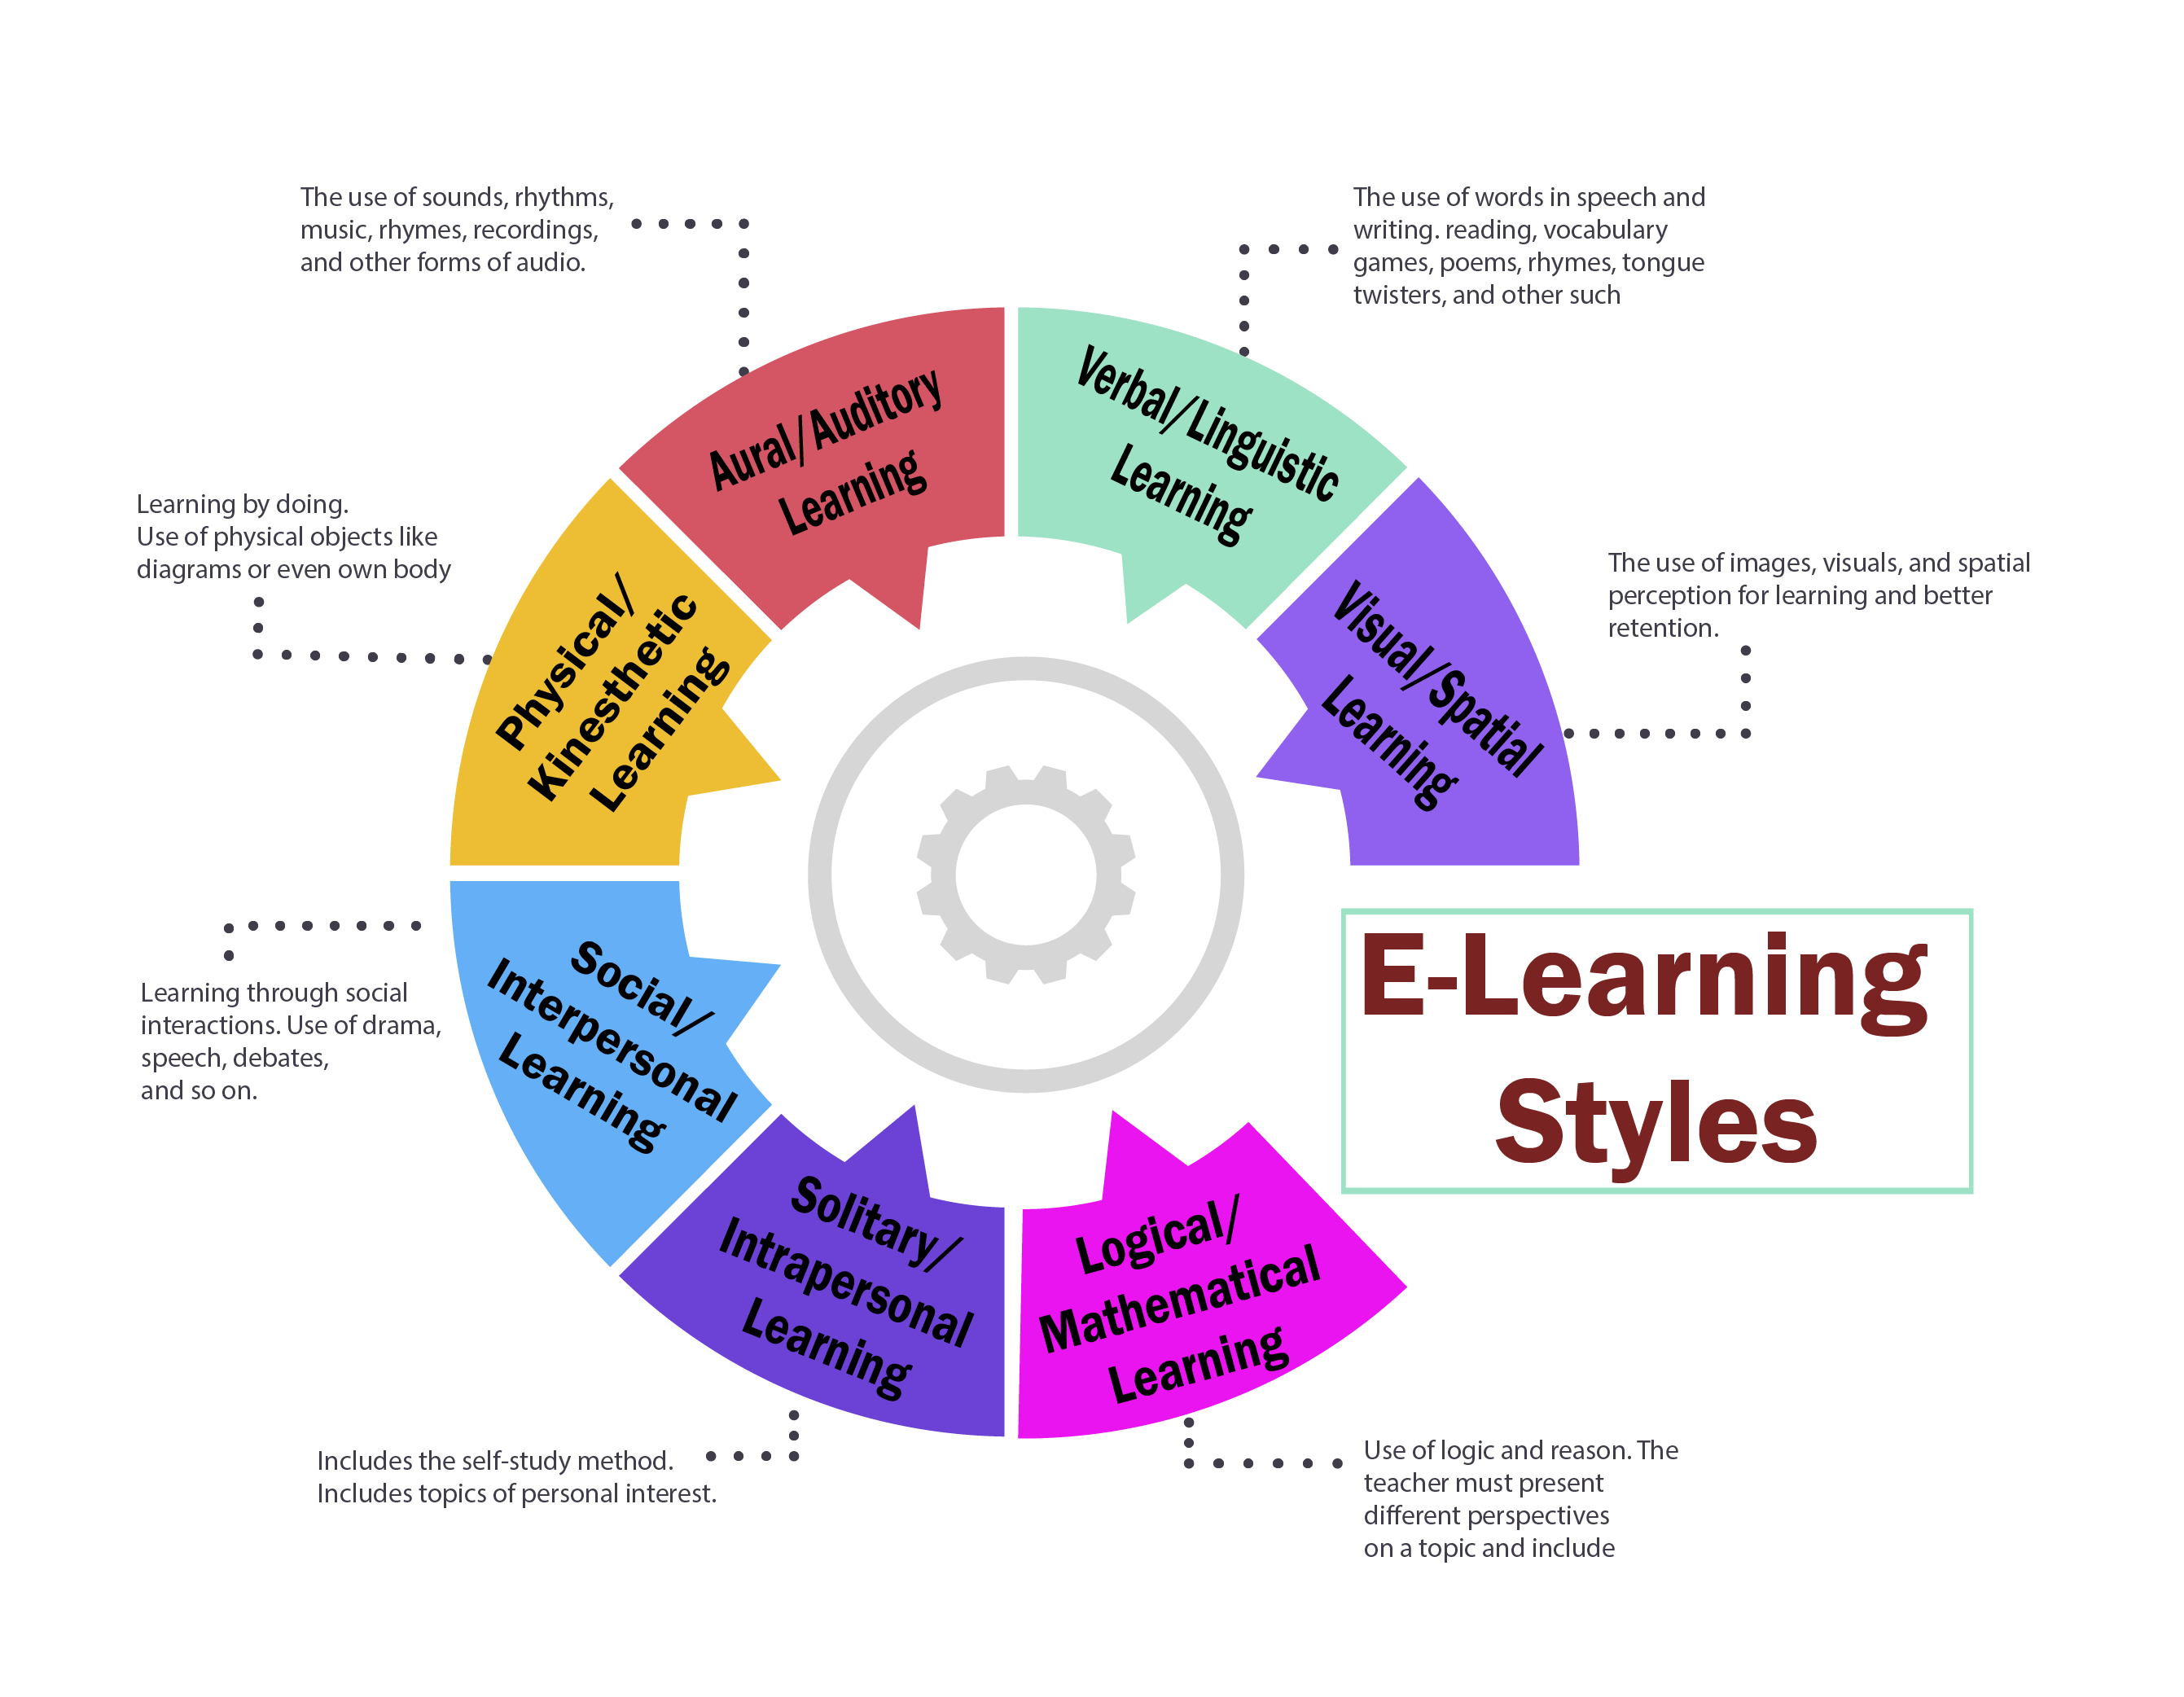 E-Learning Styles